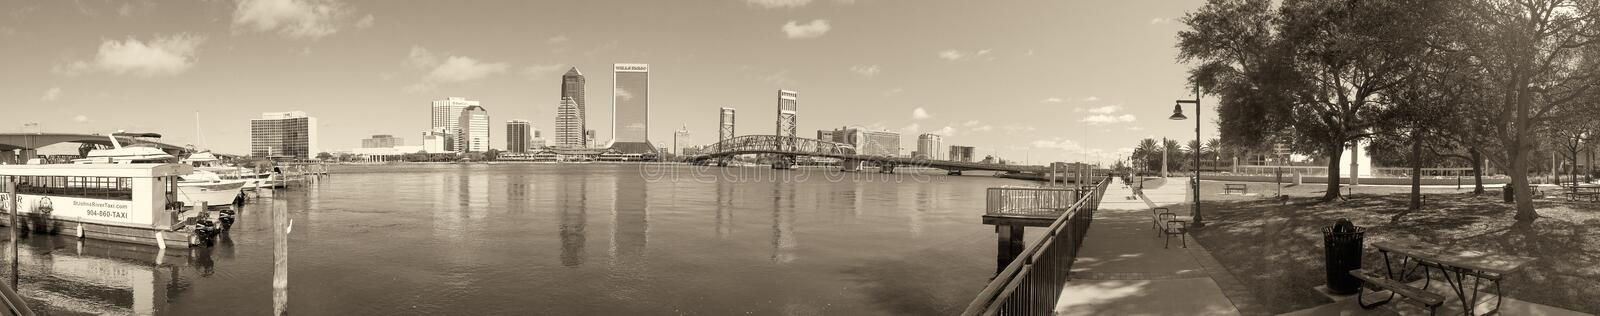 JACKSONVILLE, FL - FEBRUARY 2016: Panoramic view of city skyline. With tourists. jacksonville is a famous Florida destination royalty free stock photo